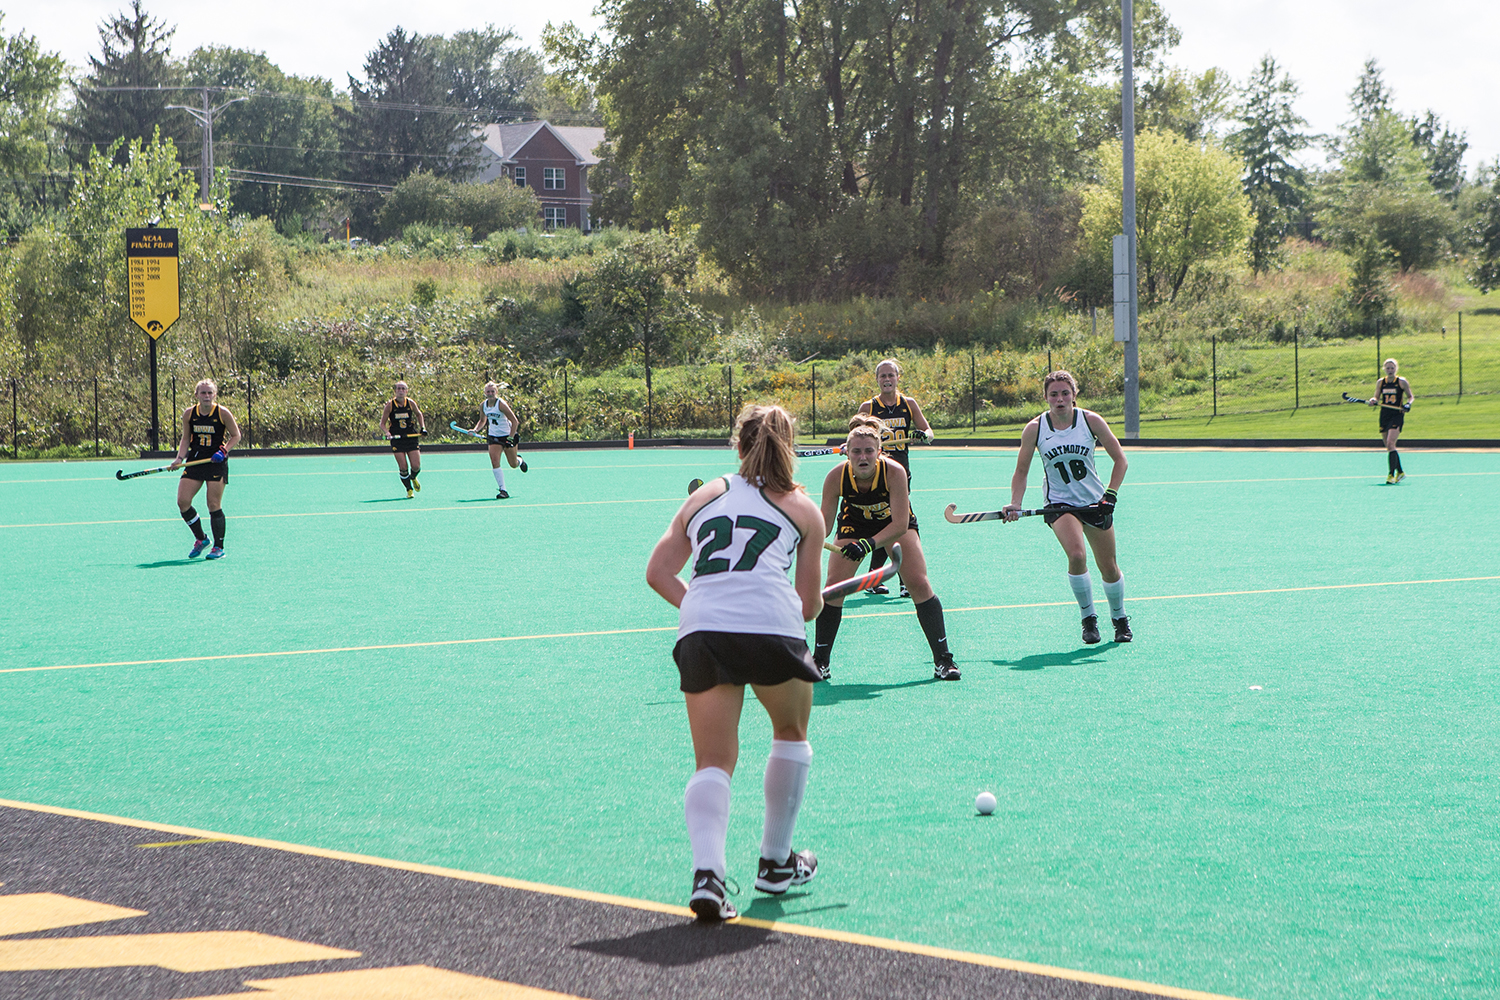 Dartmouth%27s+Sara+Falkson+passes+the+ball+in+during+a+field+hockey+match+between+Iowa+and+Dartmouth+College+at+Grant+Field+on+Friday%2C+August+31%2C+2018.+The+Hawkeyes+shut+out+the+Big+Green%2C+6-0.